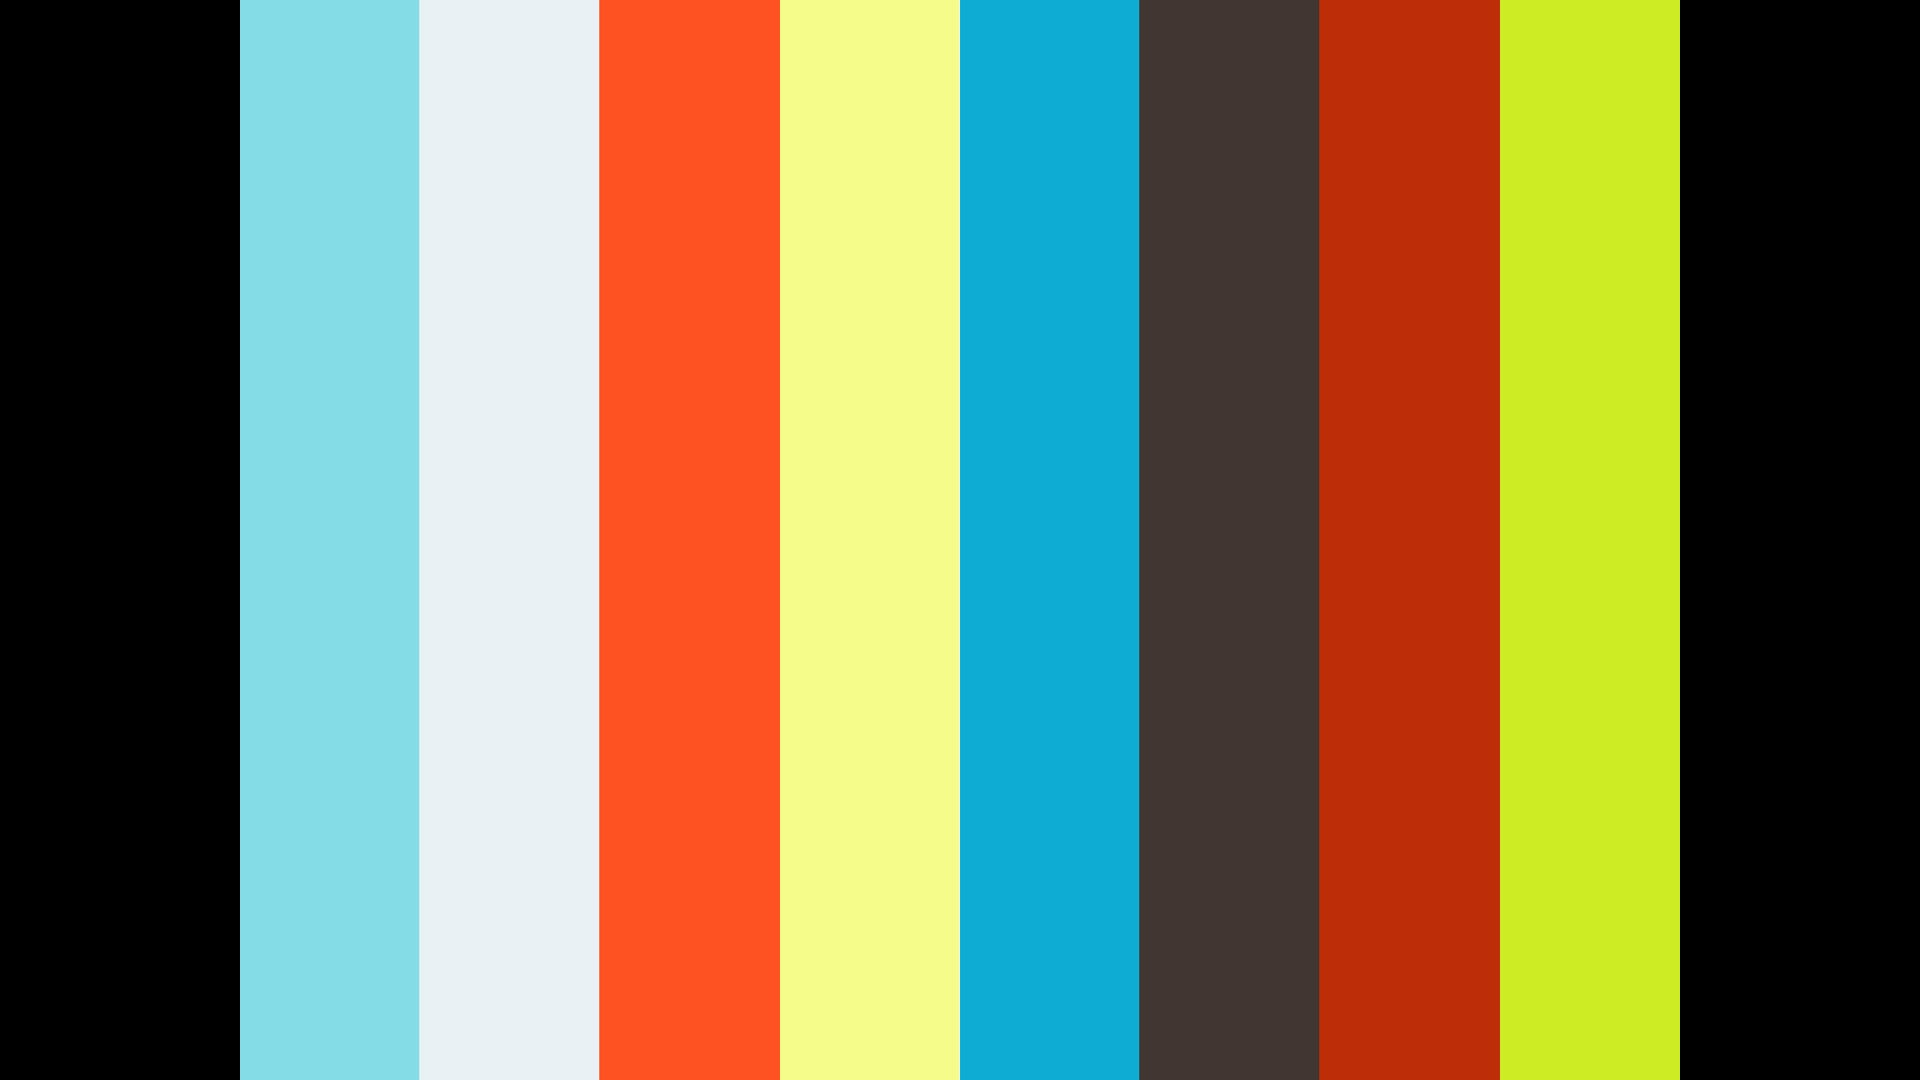 Martello Completes First Phase of Testing its SD-WAN Solution on ENCQOR 5G